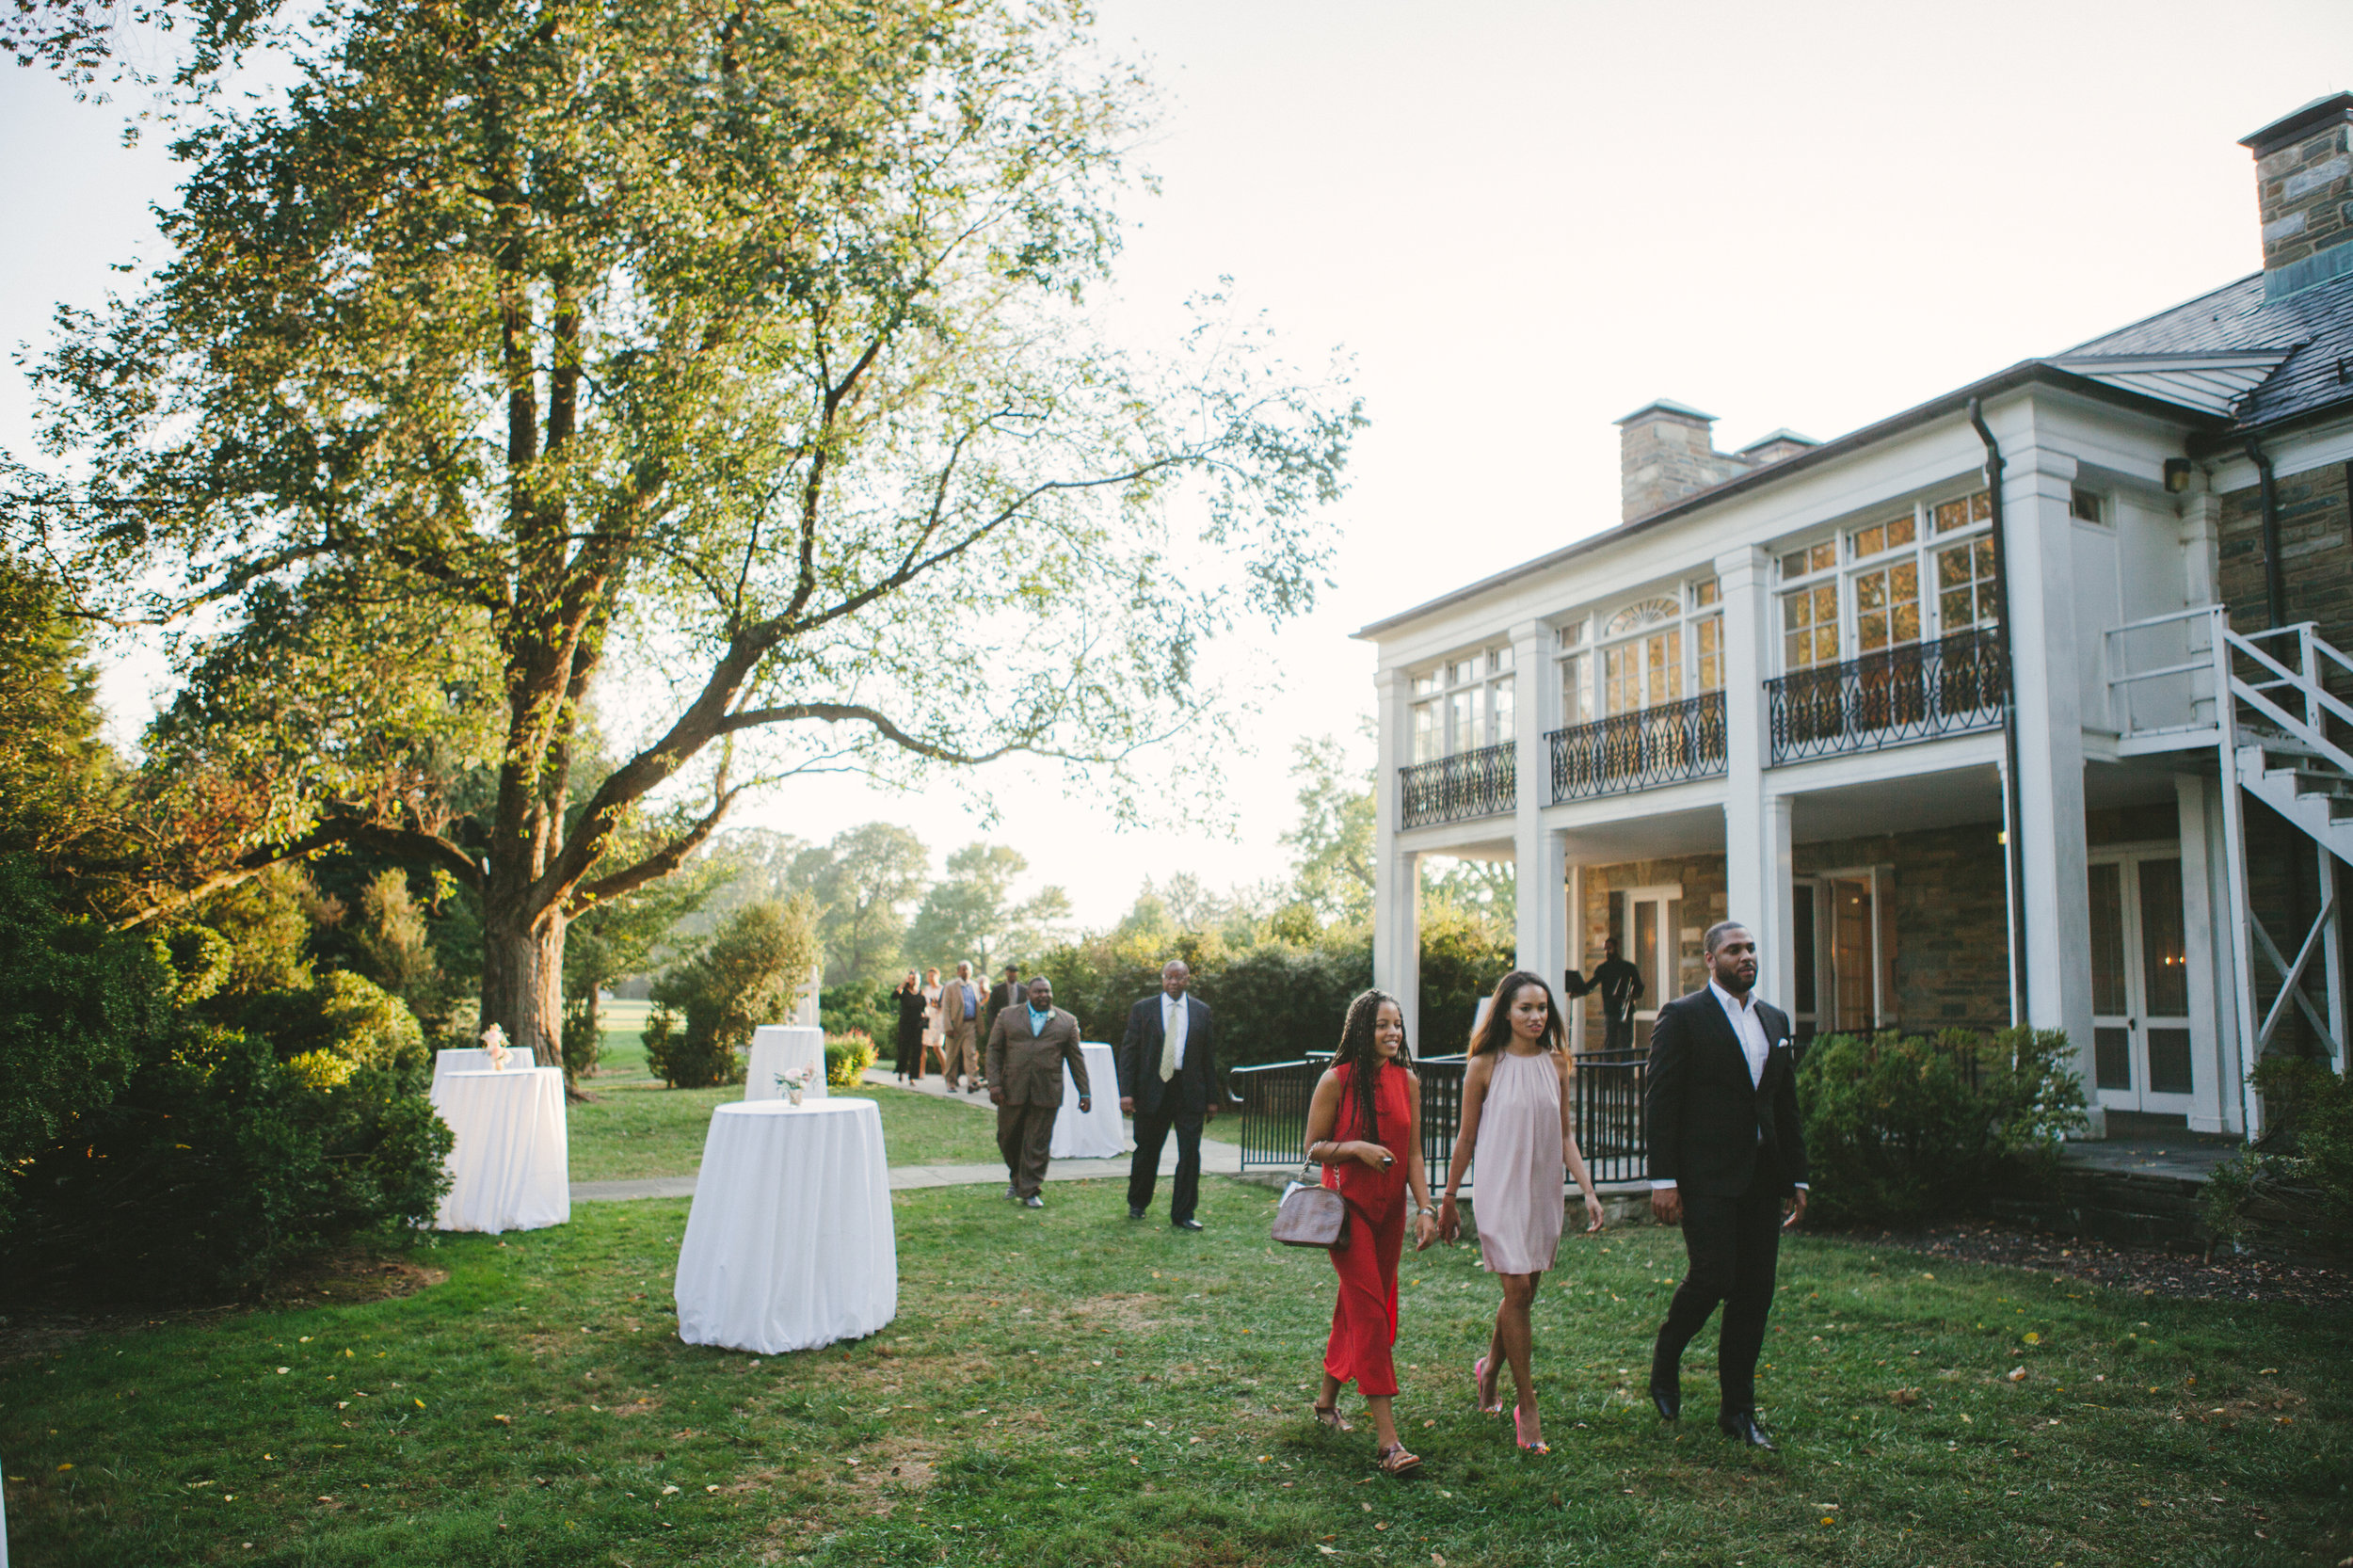 GLENVIEW MANSION WEDDING - INTIMATE WEDDING PHOTOGRAPHER - TWOTWENTY by CHI-CHI AGBIM-52.jpg